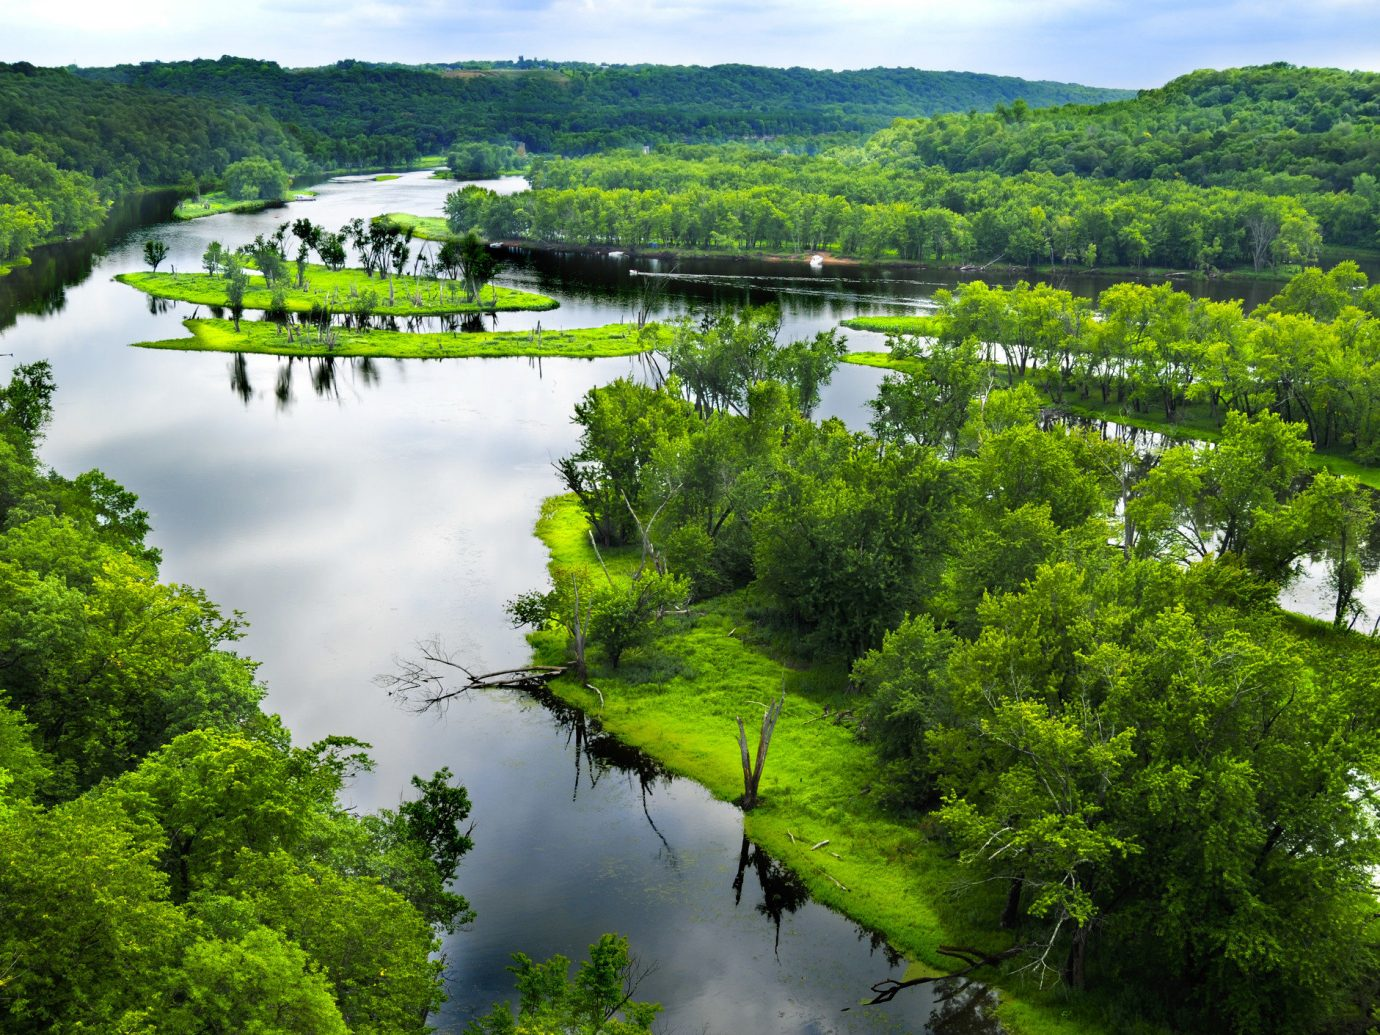 Trip Ideas tree outdoor sky water habitat Nature River nature reserve reflection Lake wilderness body of water ecosystem tarn loch green Forest fjord reservoir landscape wetland pond stream mountain range aerial photography bushes traveling hillside surrounded land